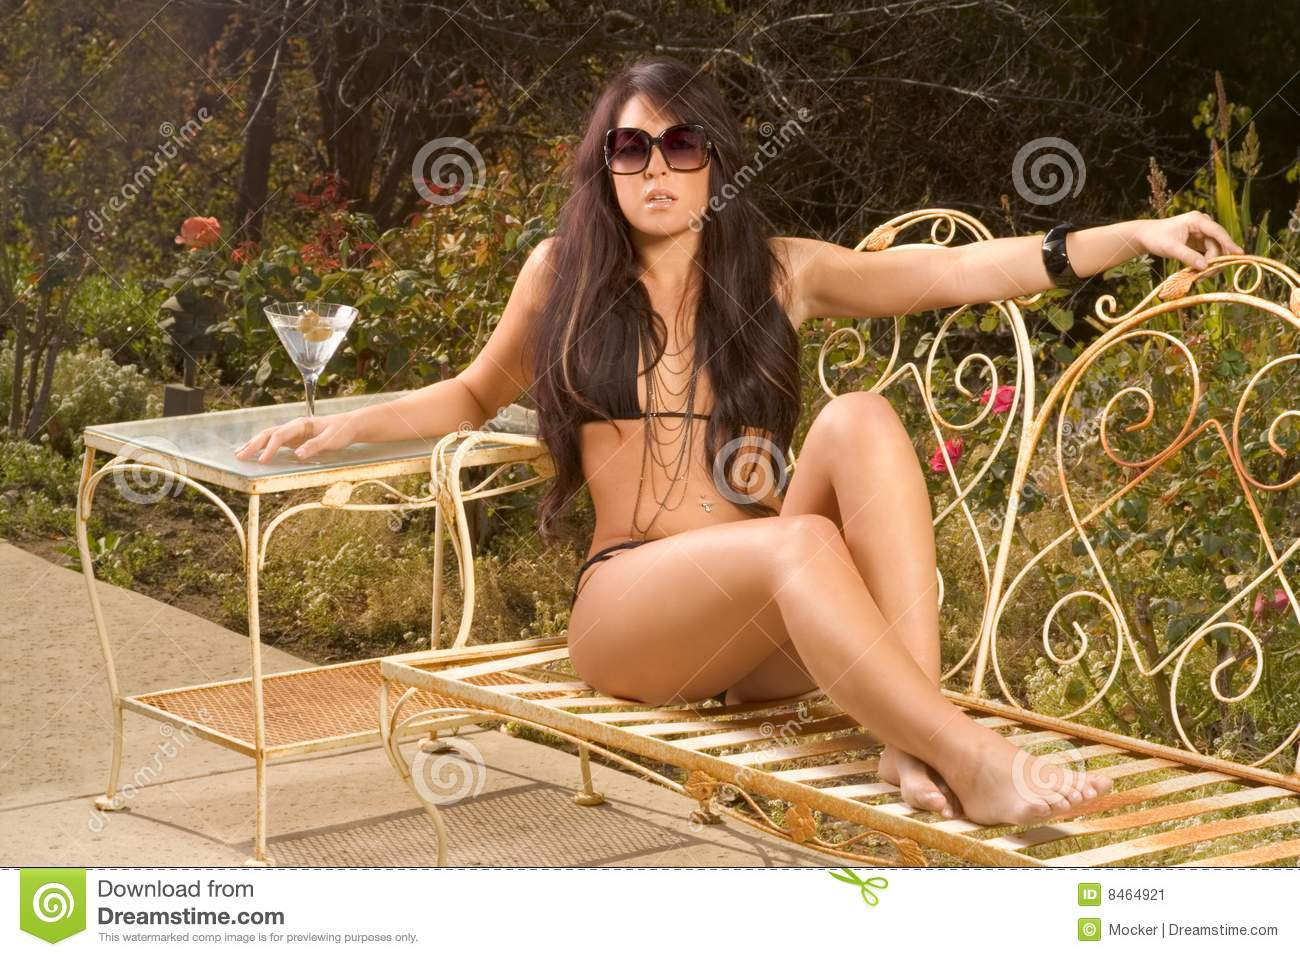 Foto Di Donne In Costume Da Bagno Woman In Black Swimsuit Sunbathing On Bench Stock Image